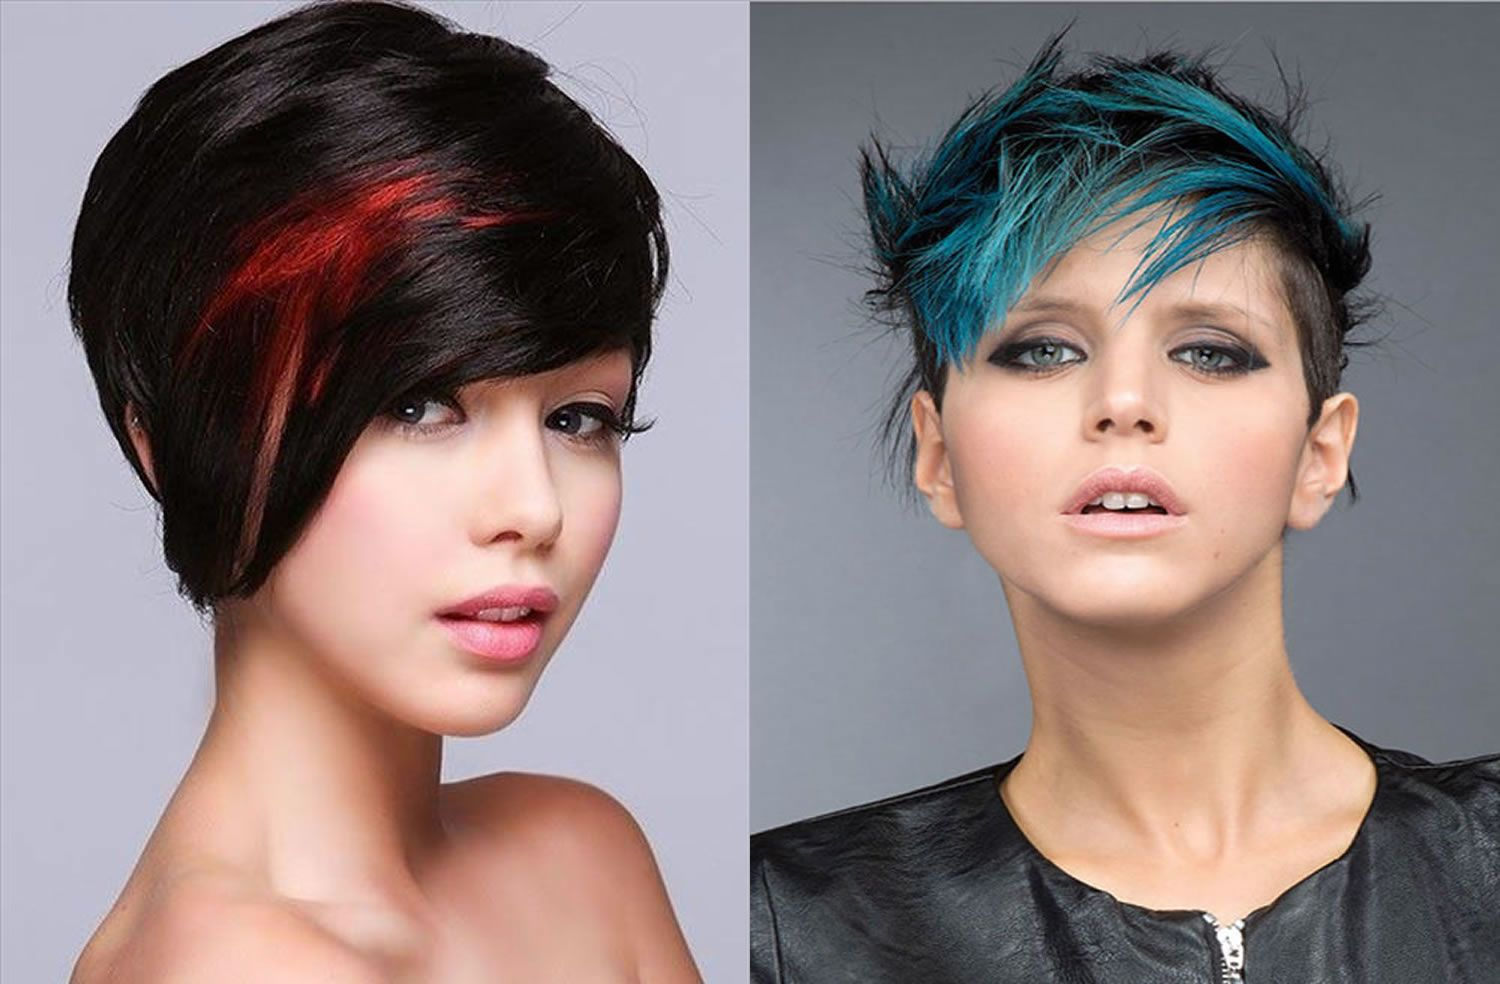 colored hair models best colorful hair styles